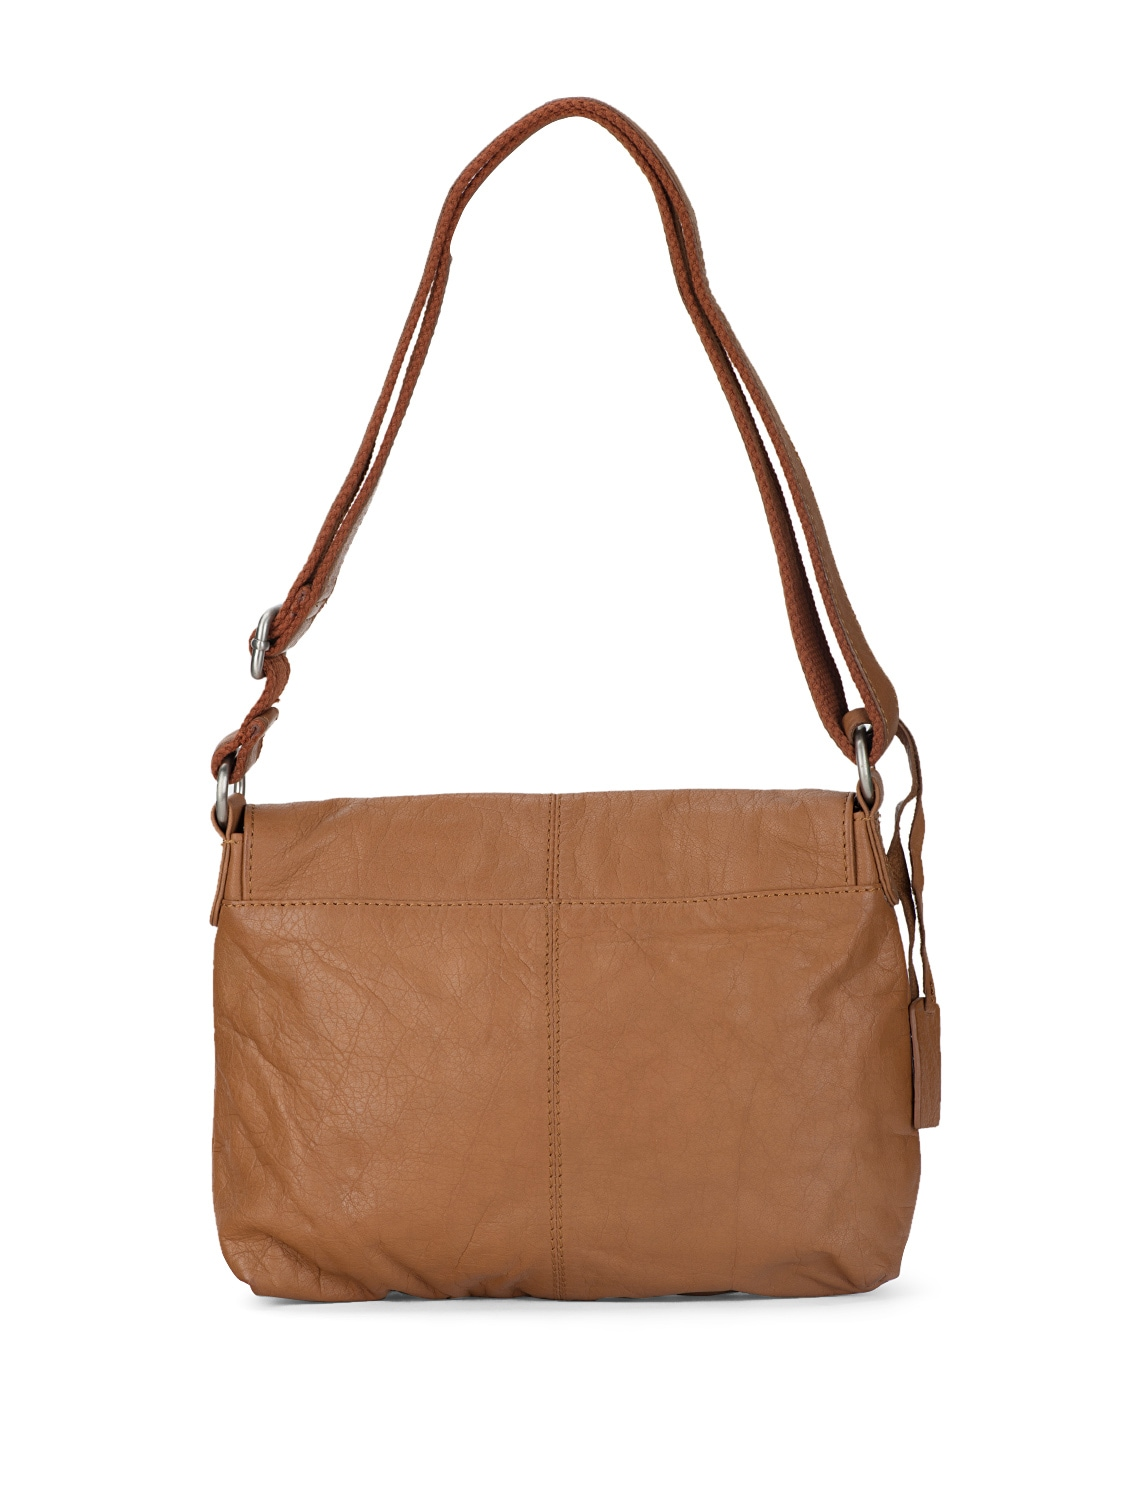 8e1eaf5842a1 Buy Tasteful Tan Bag by Ivory Tag - Online shopping for Sling Bags in India